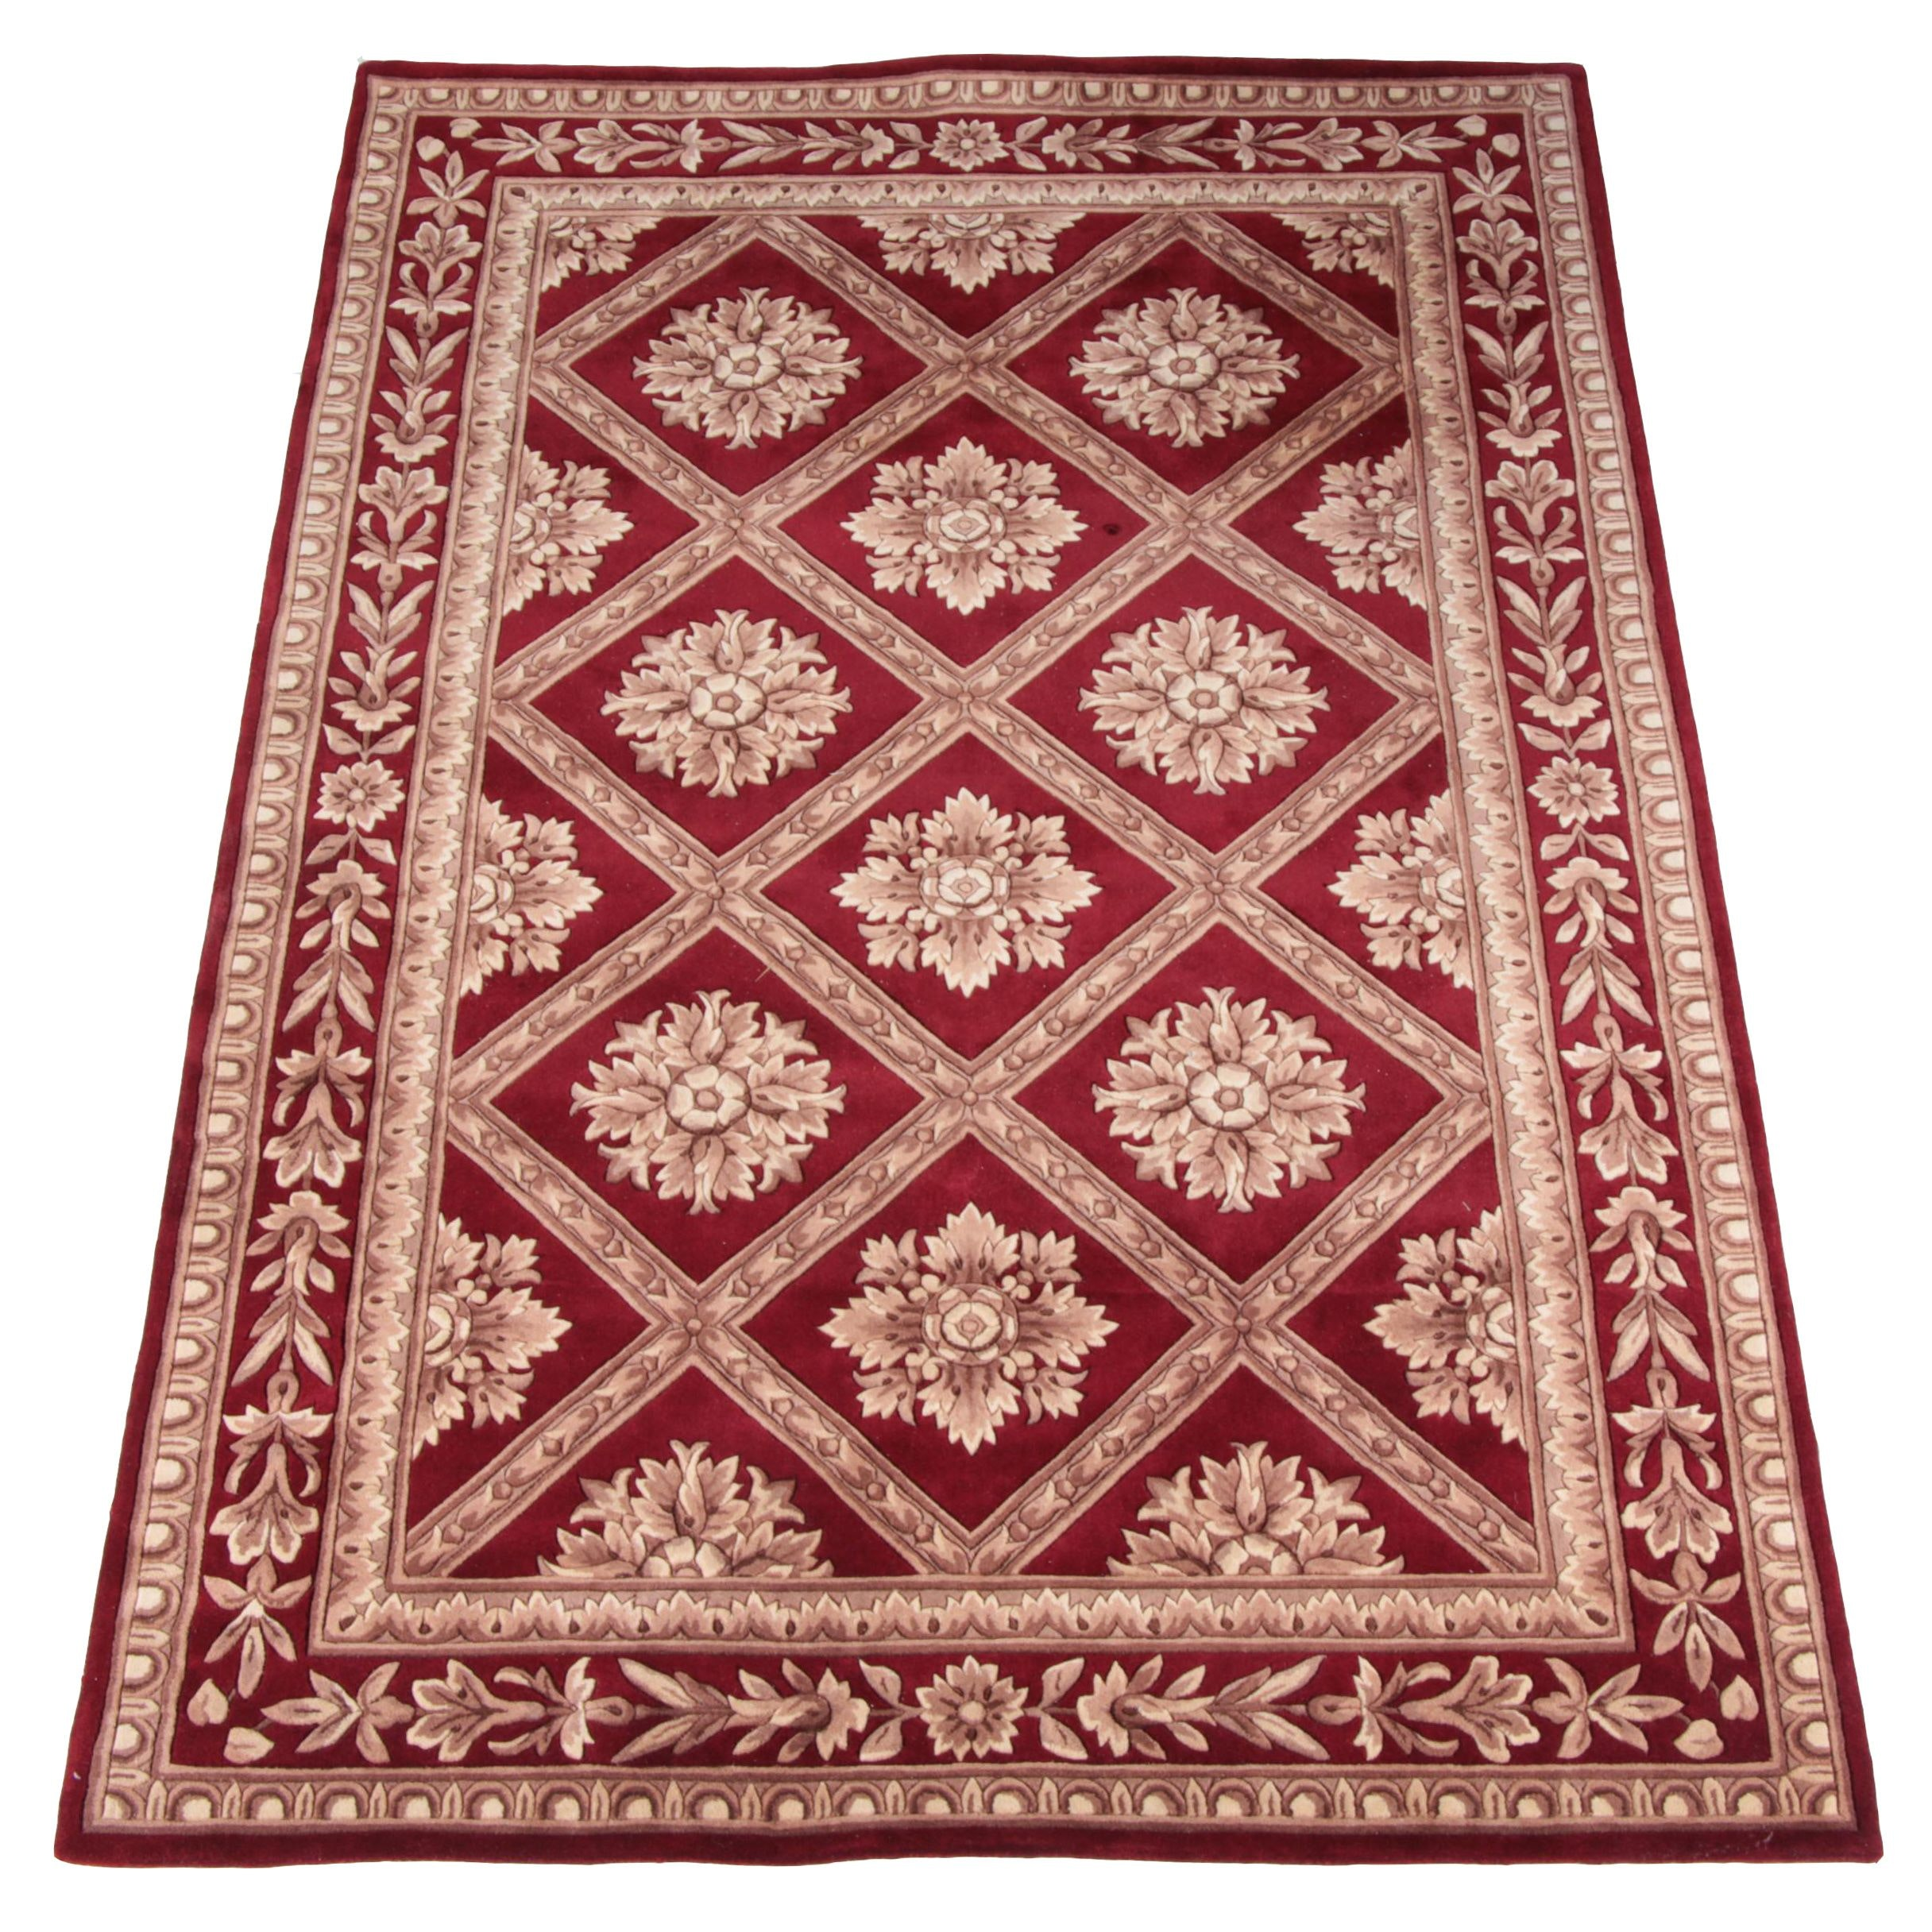 Chinese Tufted Area Rug